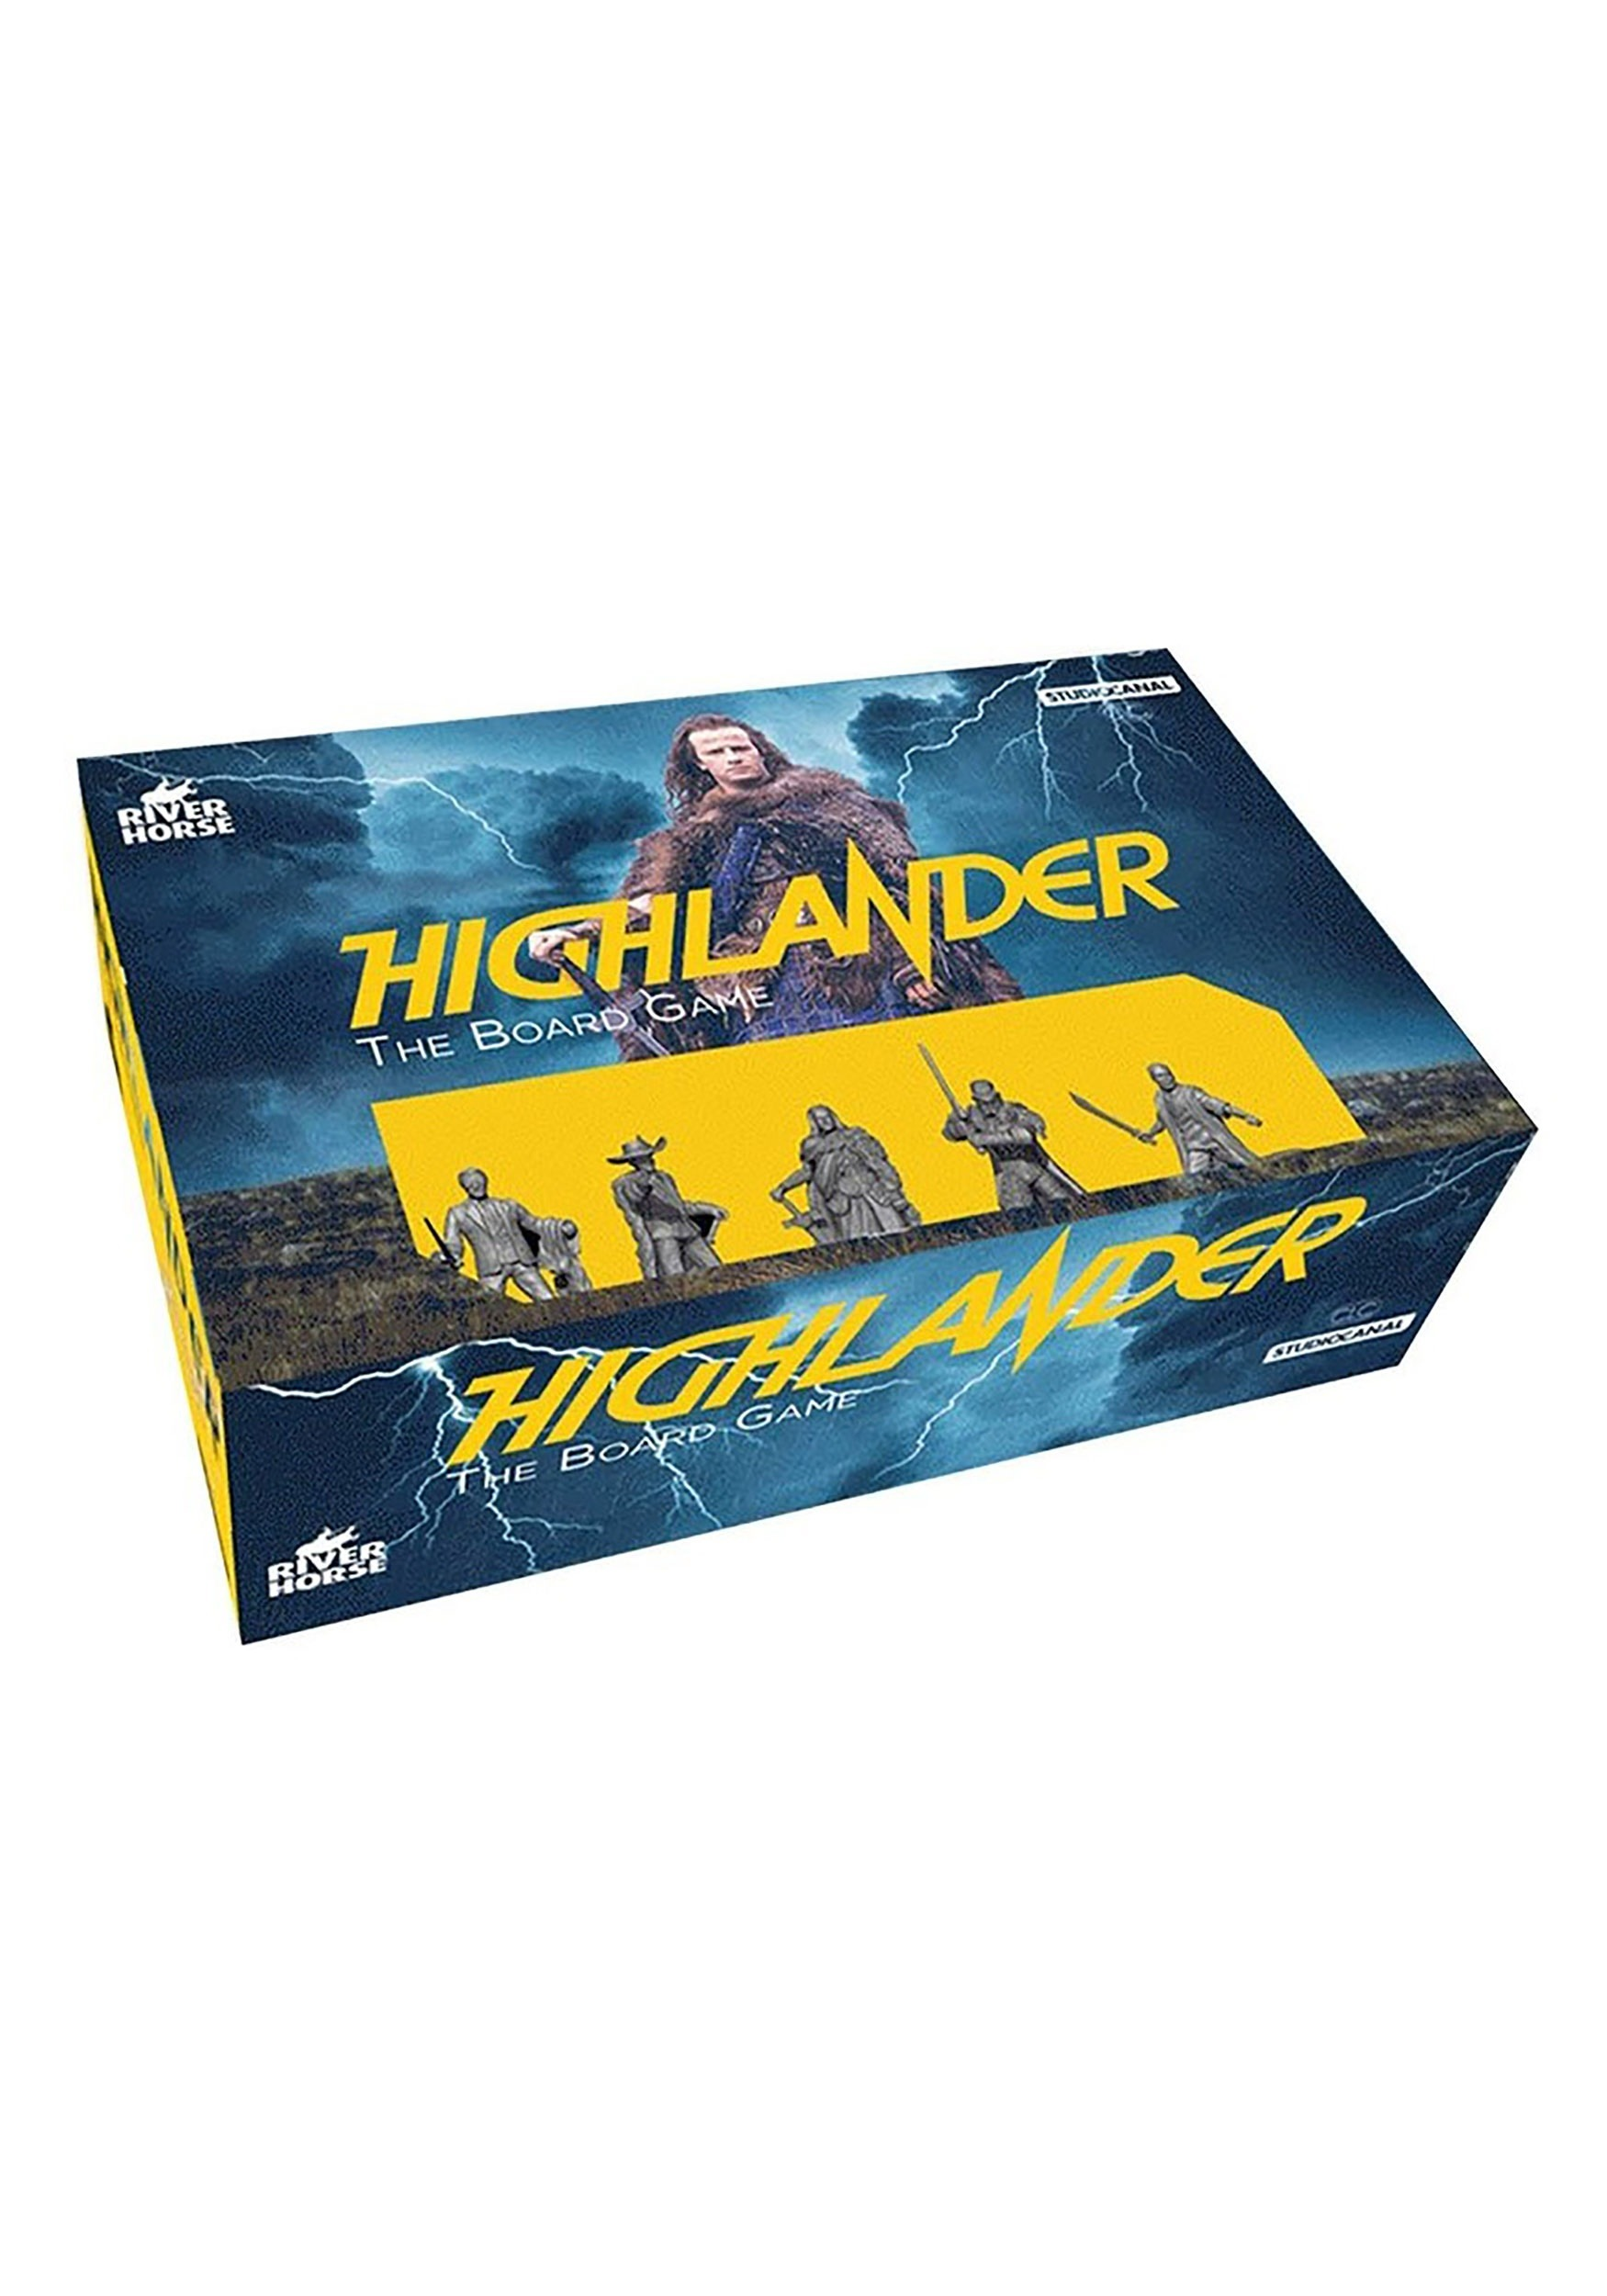 Highlander: The Board Game by River Horse